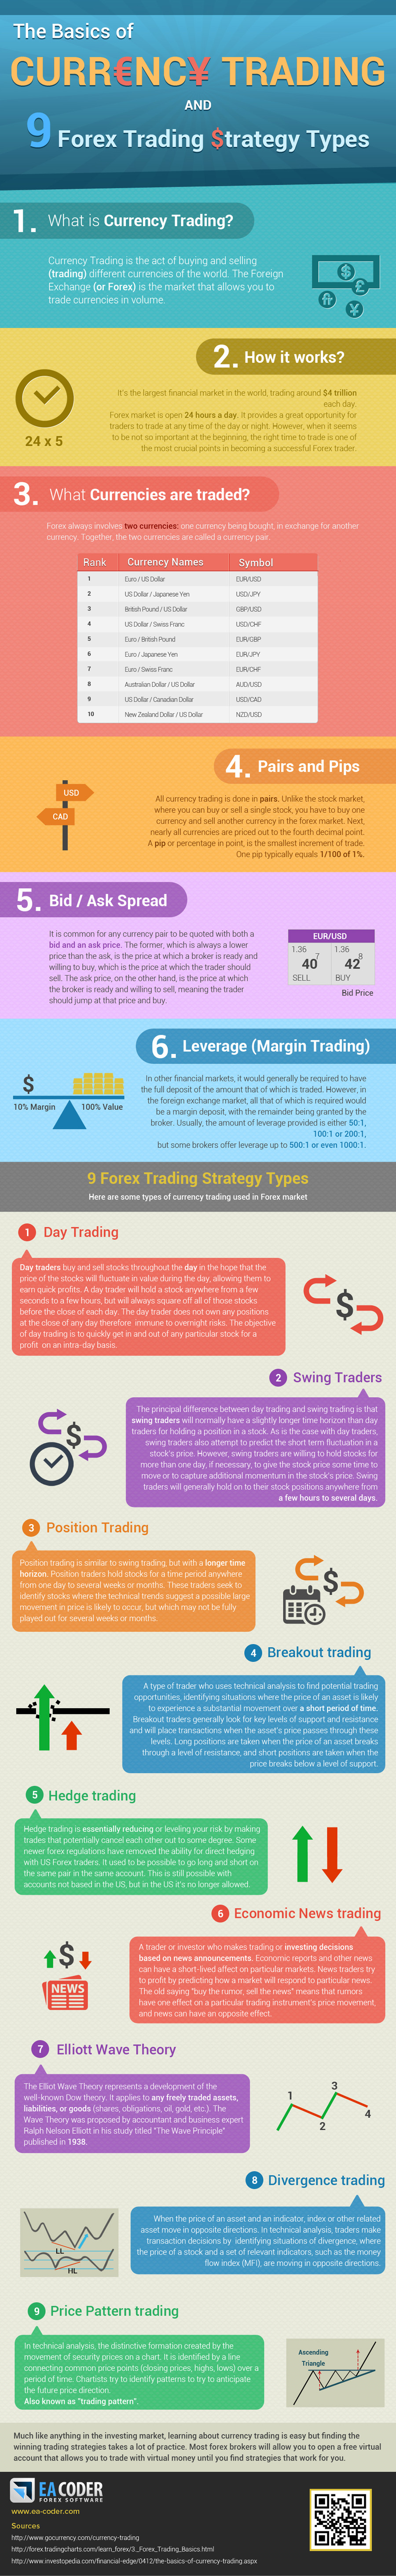 The Basics of Currency Trading and 9 Forex Trading Strategy Types